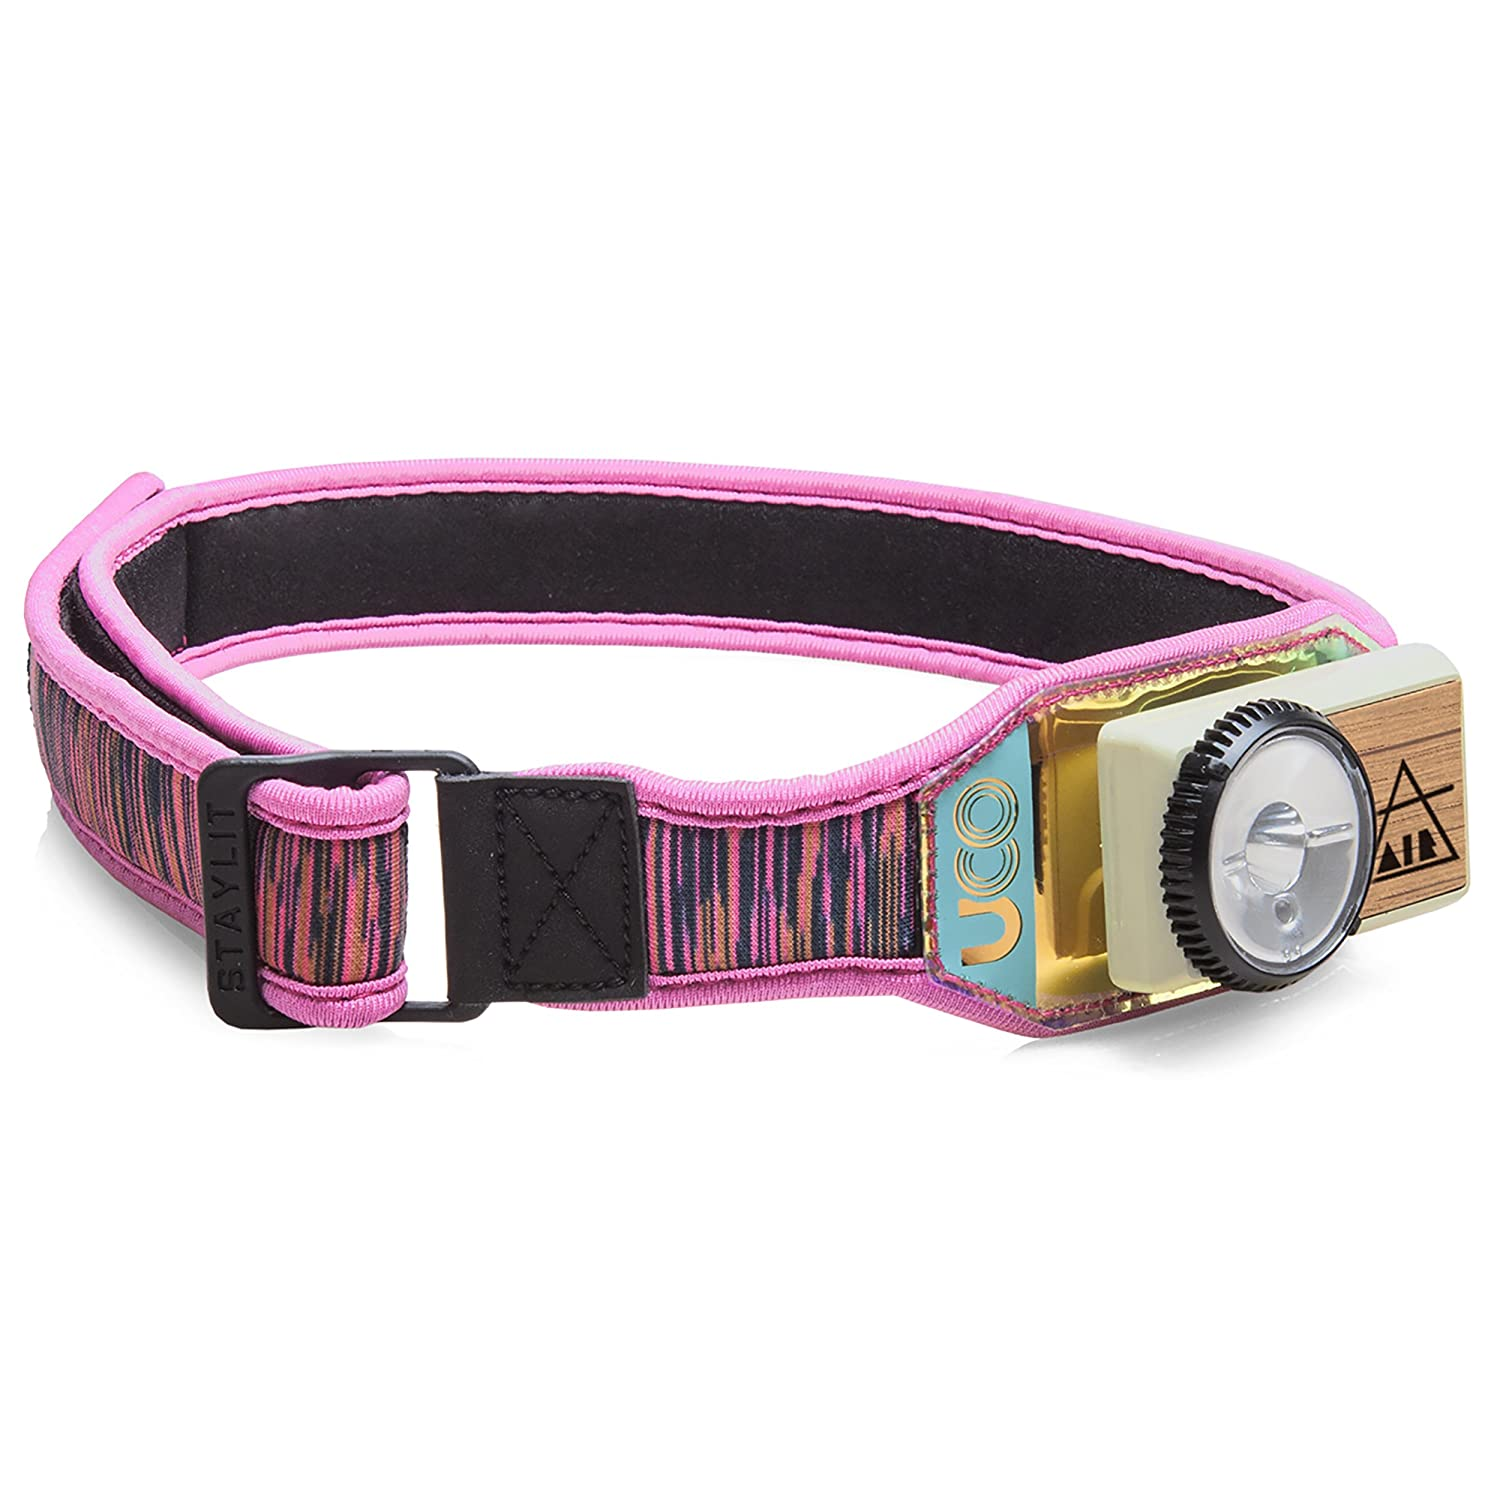 UCO Air 150 Lumen Lightweight Rechargeable LED Headlamp with Variable Brightness Dial Control and Adjustable Strap